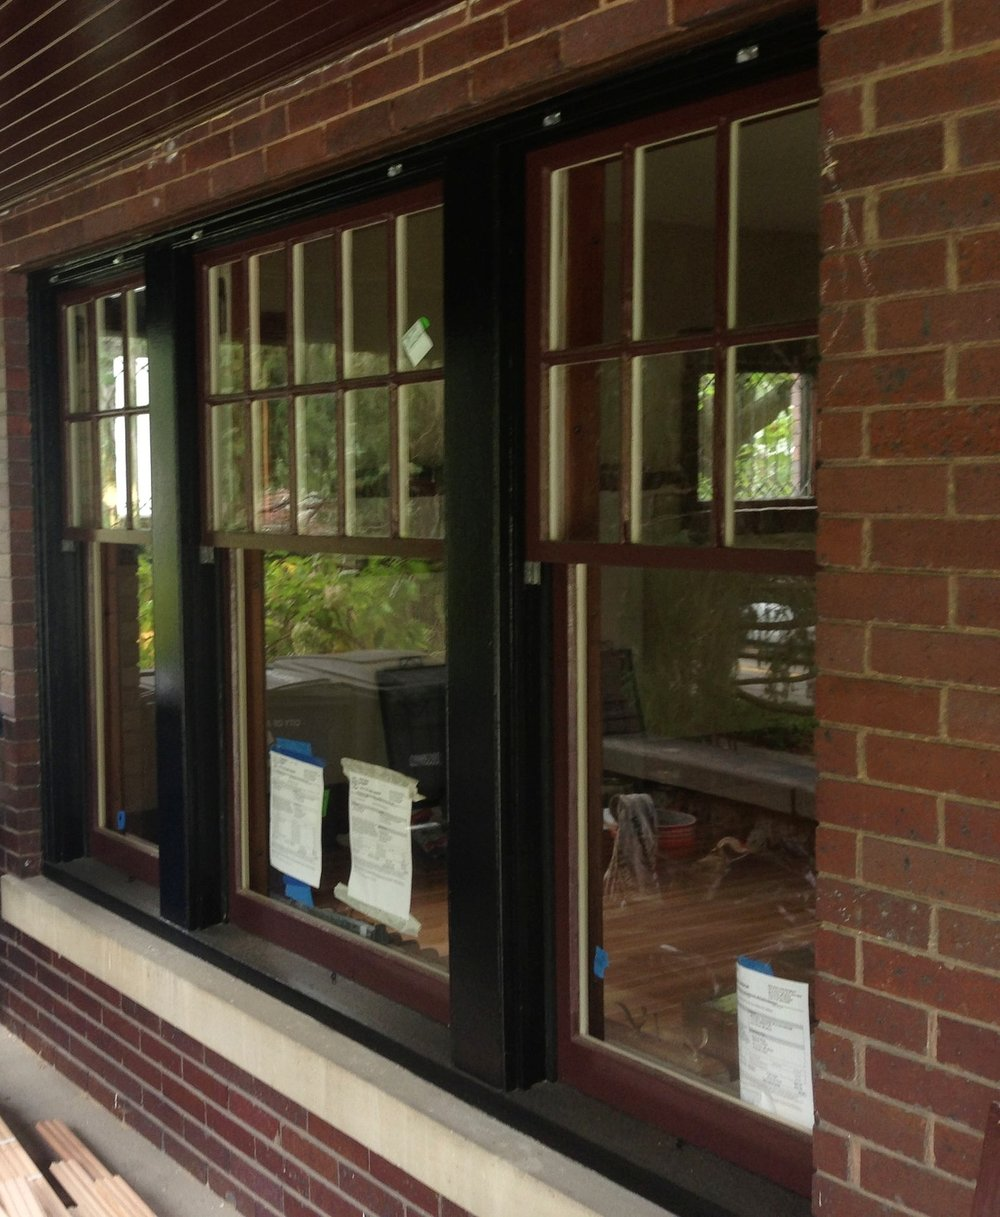 Refinished Exterior - Glazing windows improves the look and energy efficiency